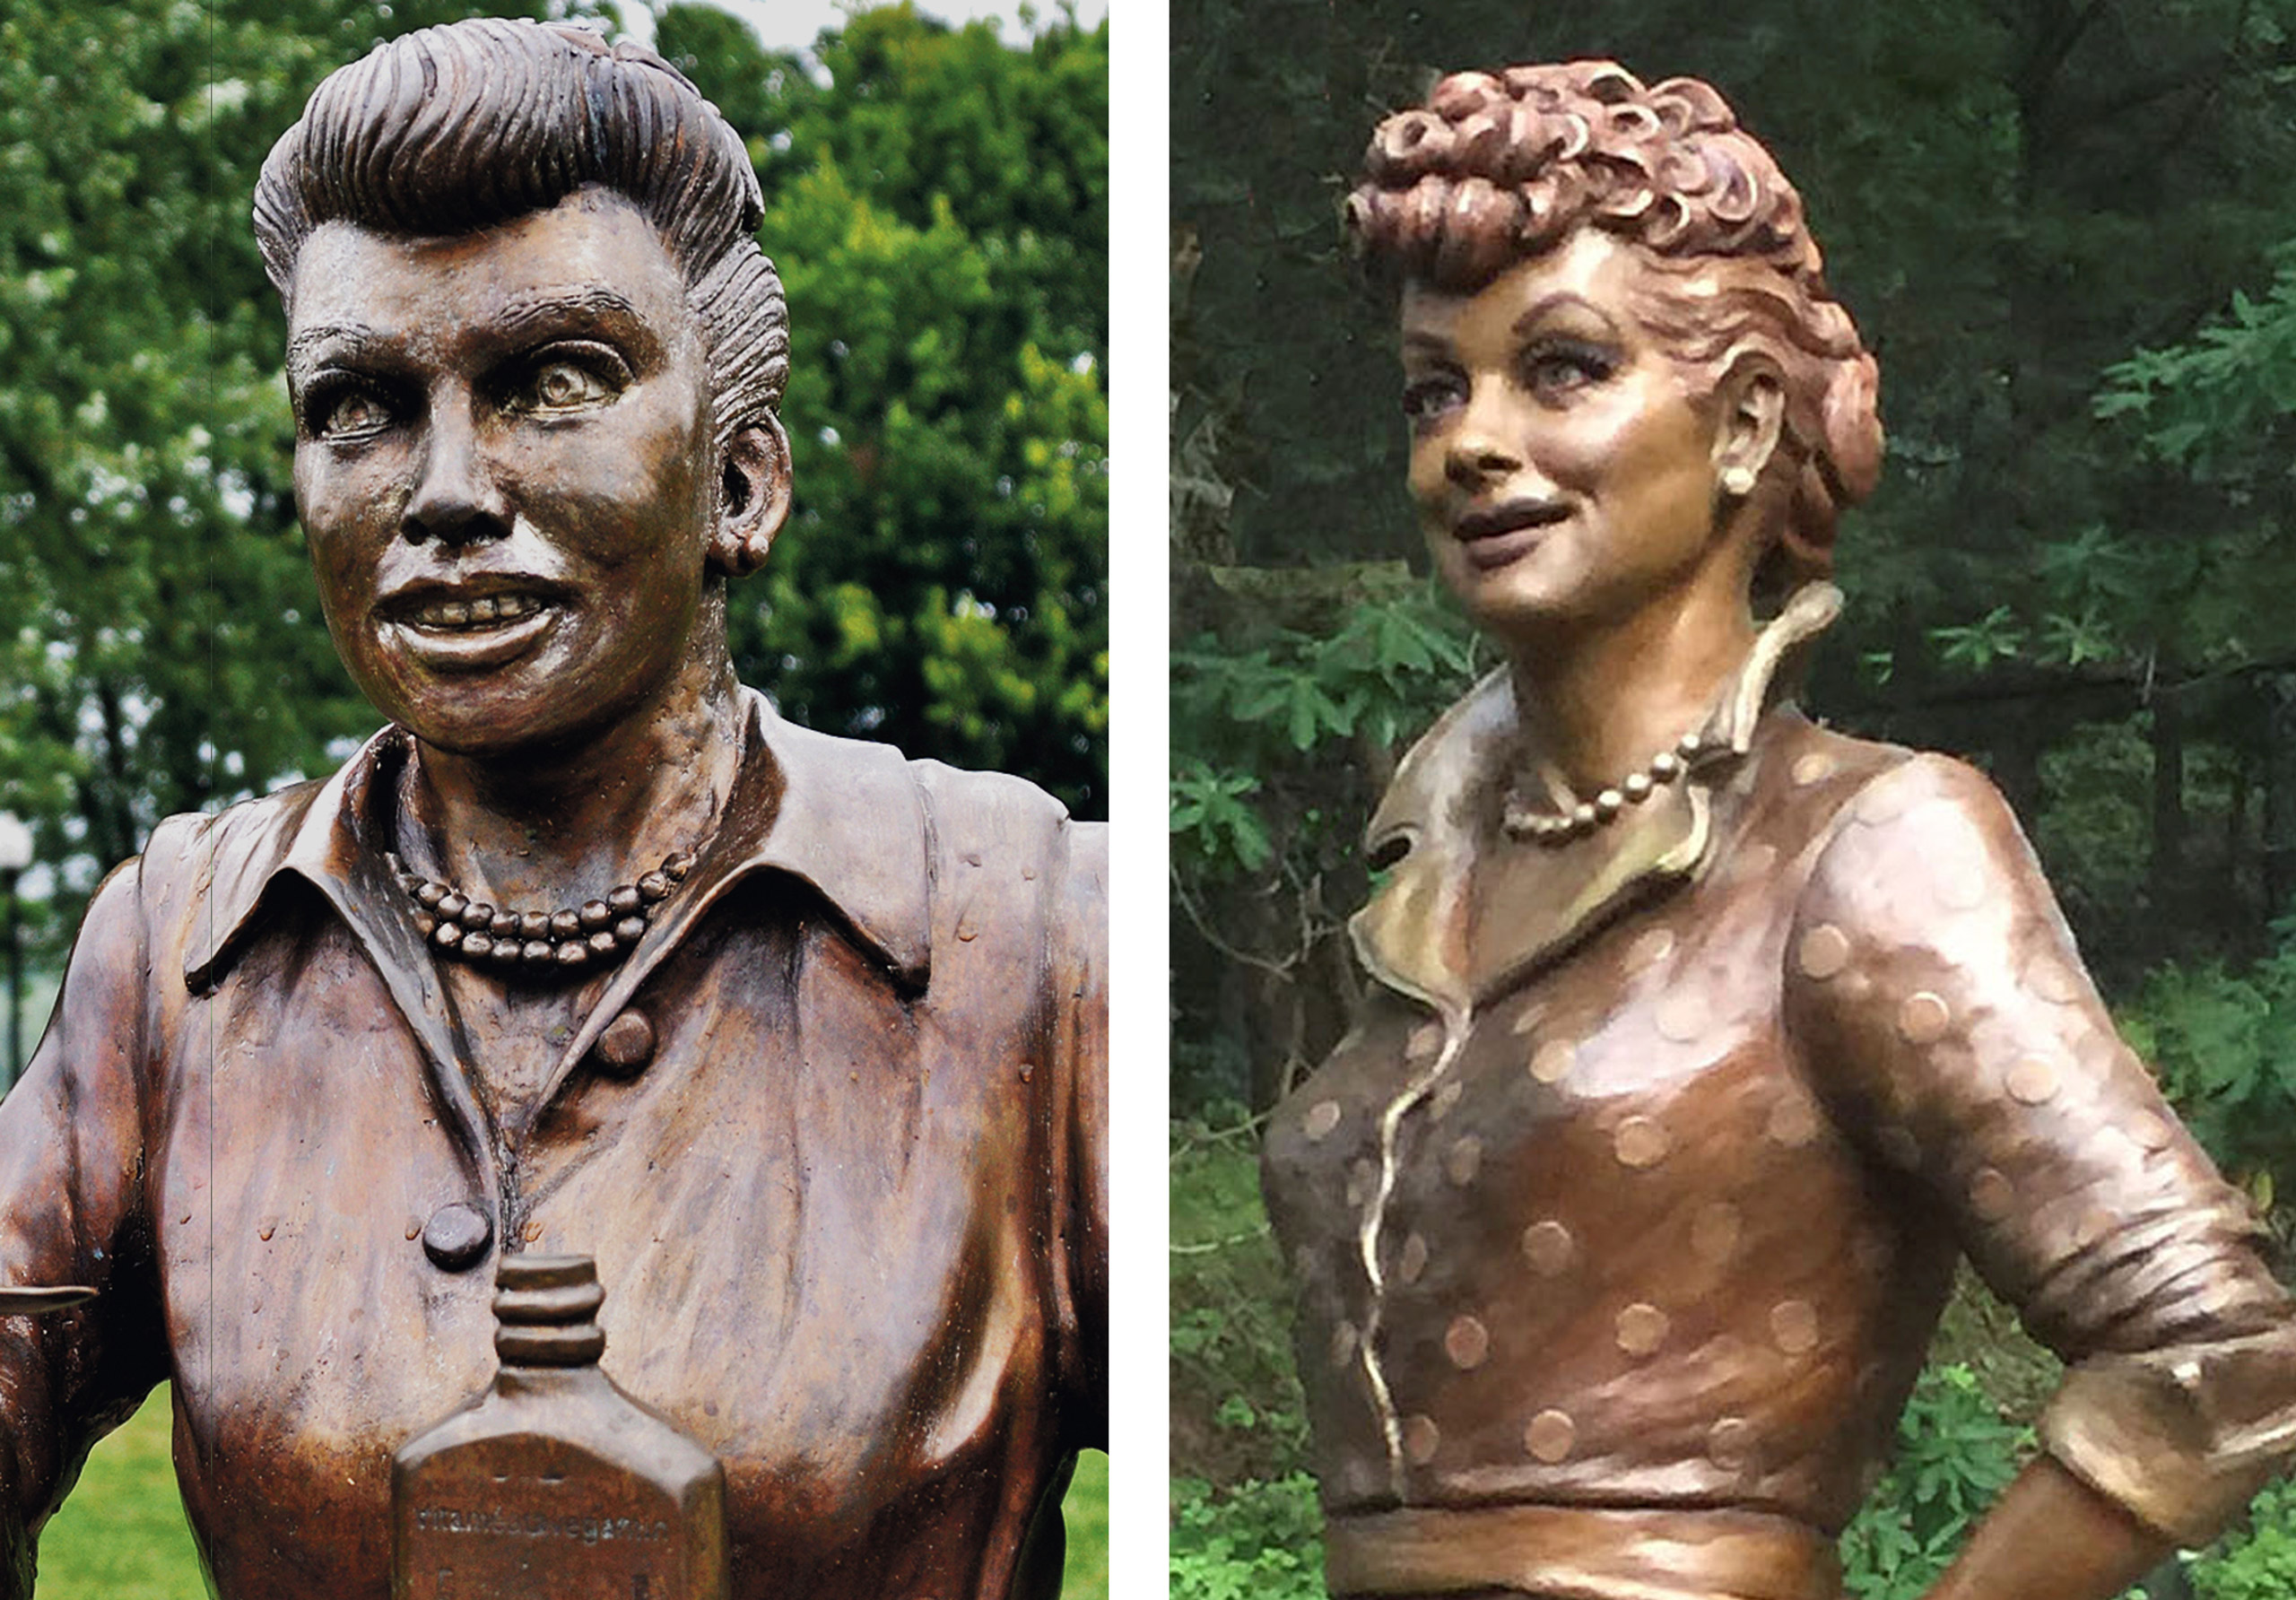 Left: The bronze sculpture of Lucille Ball by Dave Poulin, seen at the Lucille Ball Memorial Park in Celoron, N.Y.. in Aug. 2012; Right the bronze sculpture of Lucille Ball by Carolyn D. Palmer, unveiled at the Lucille Ball Memorial Park in Celeron, N.Y., on Aug. 6, 2016.